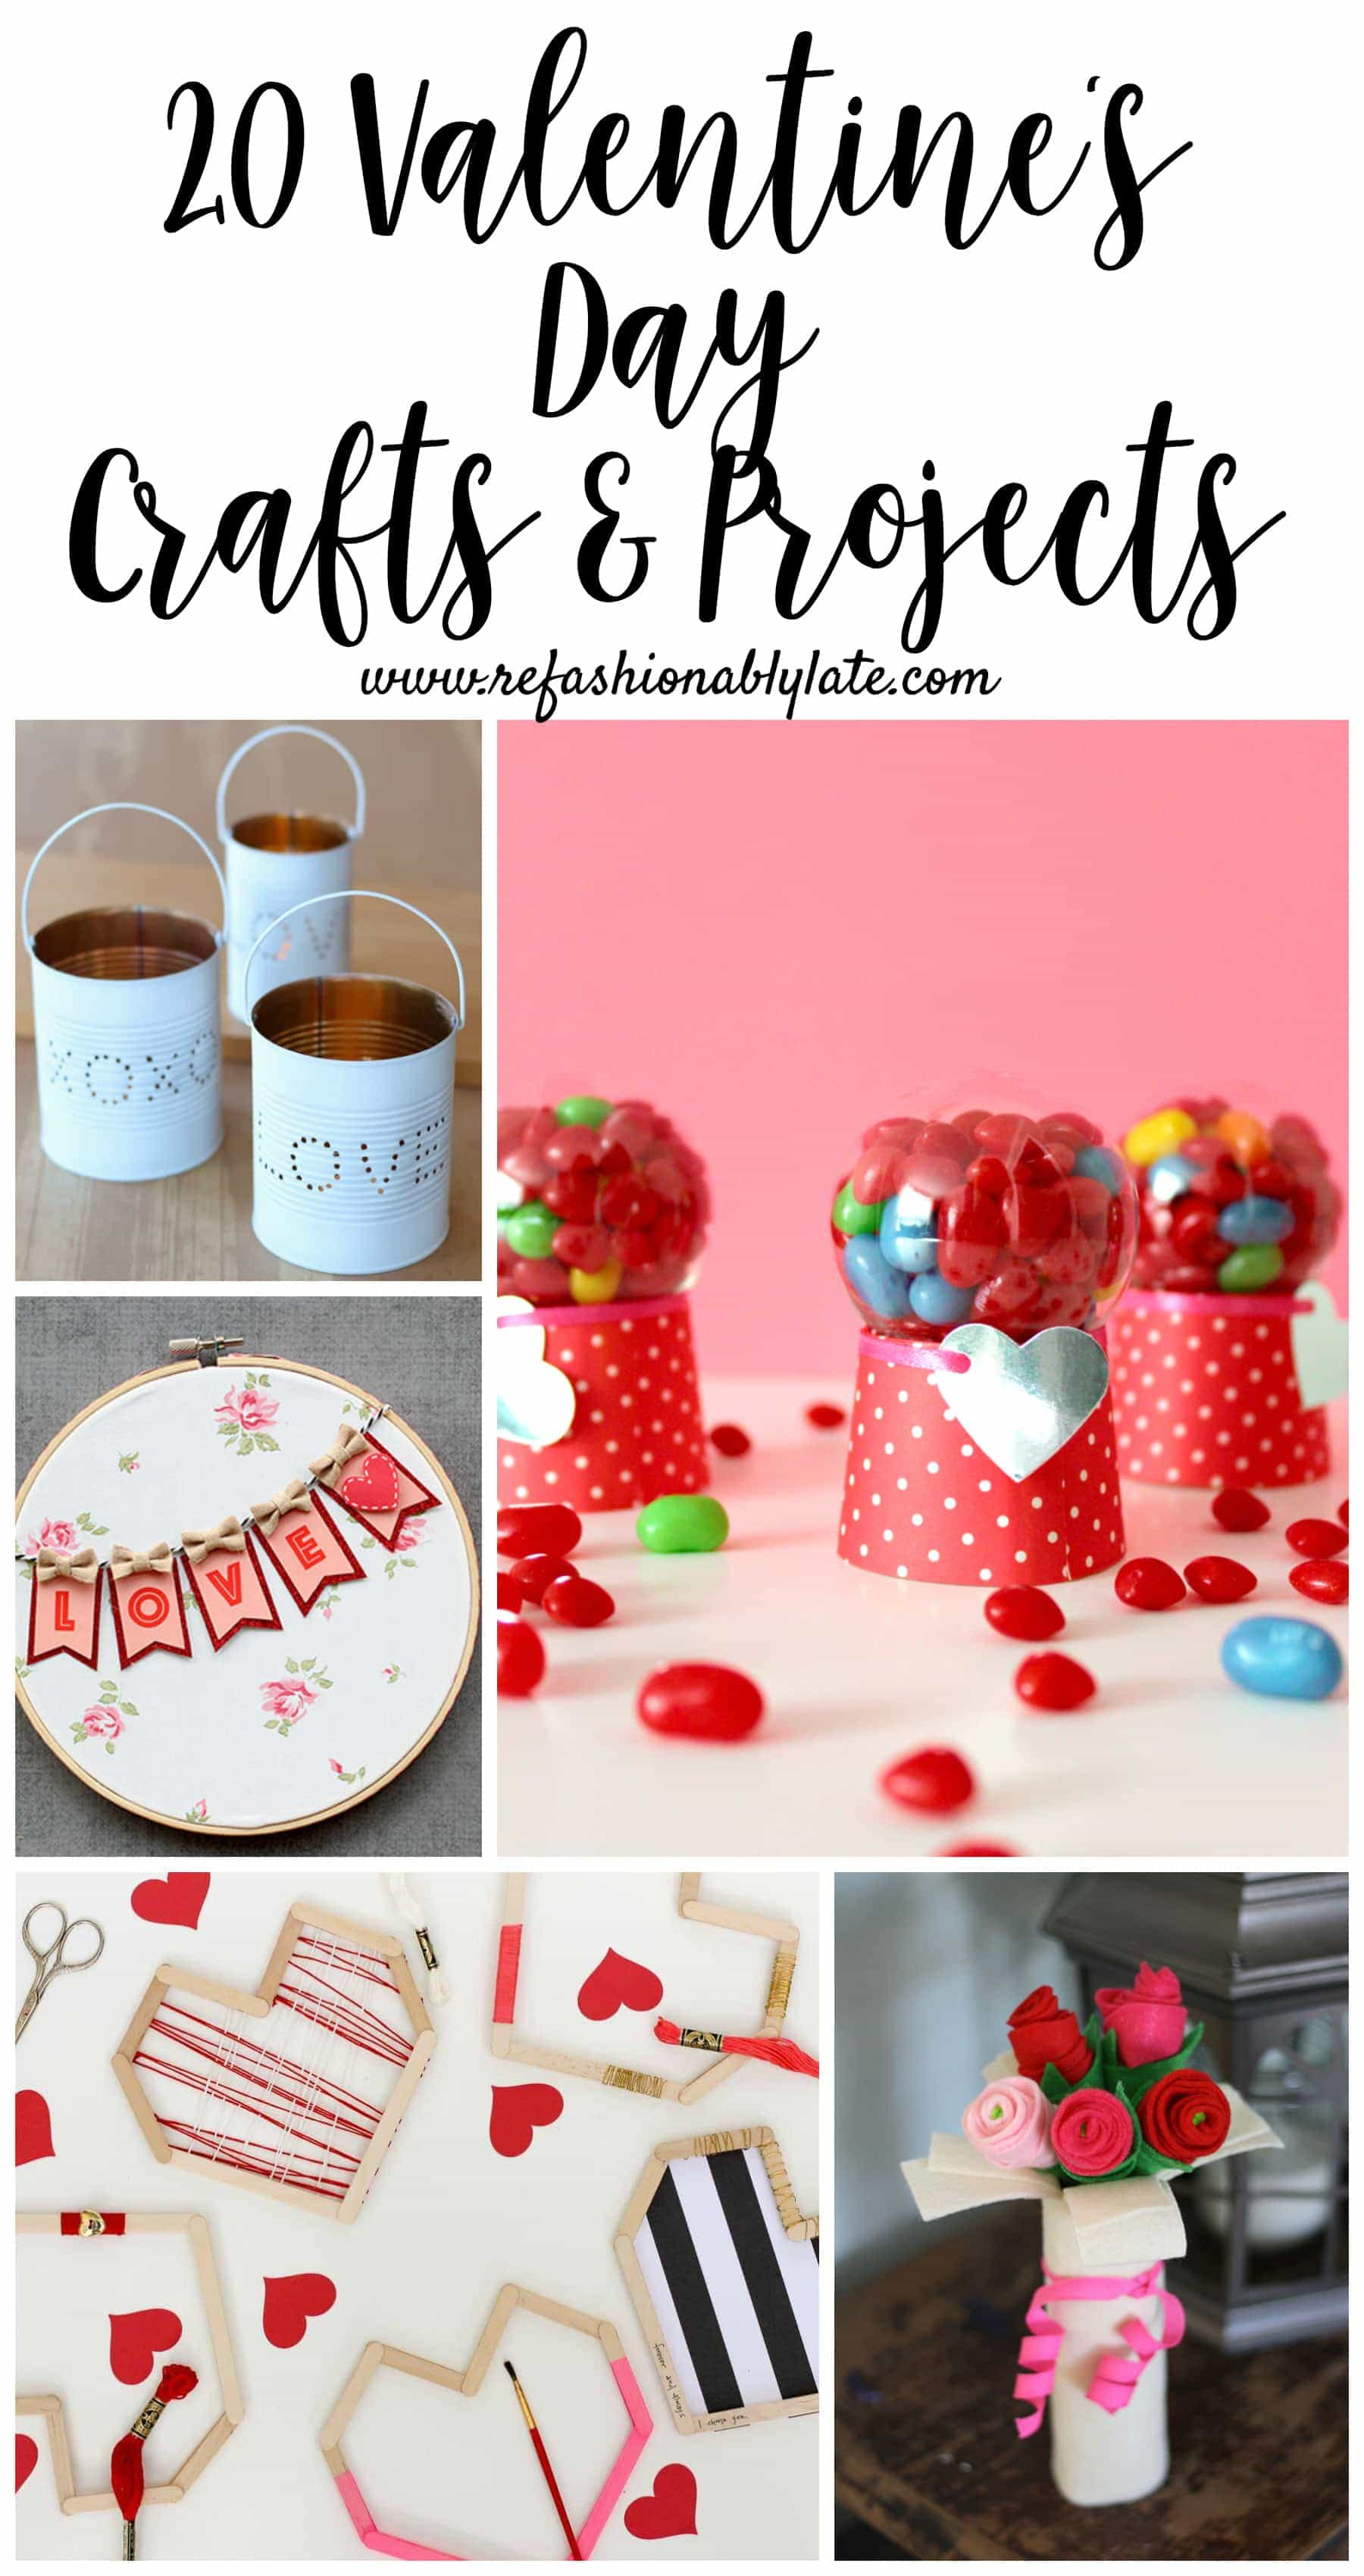 pinterest valentine craft ideas 20 s day crafts amp projects refashionably late 5203